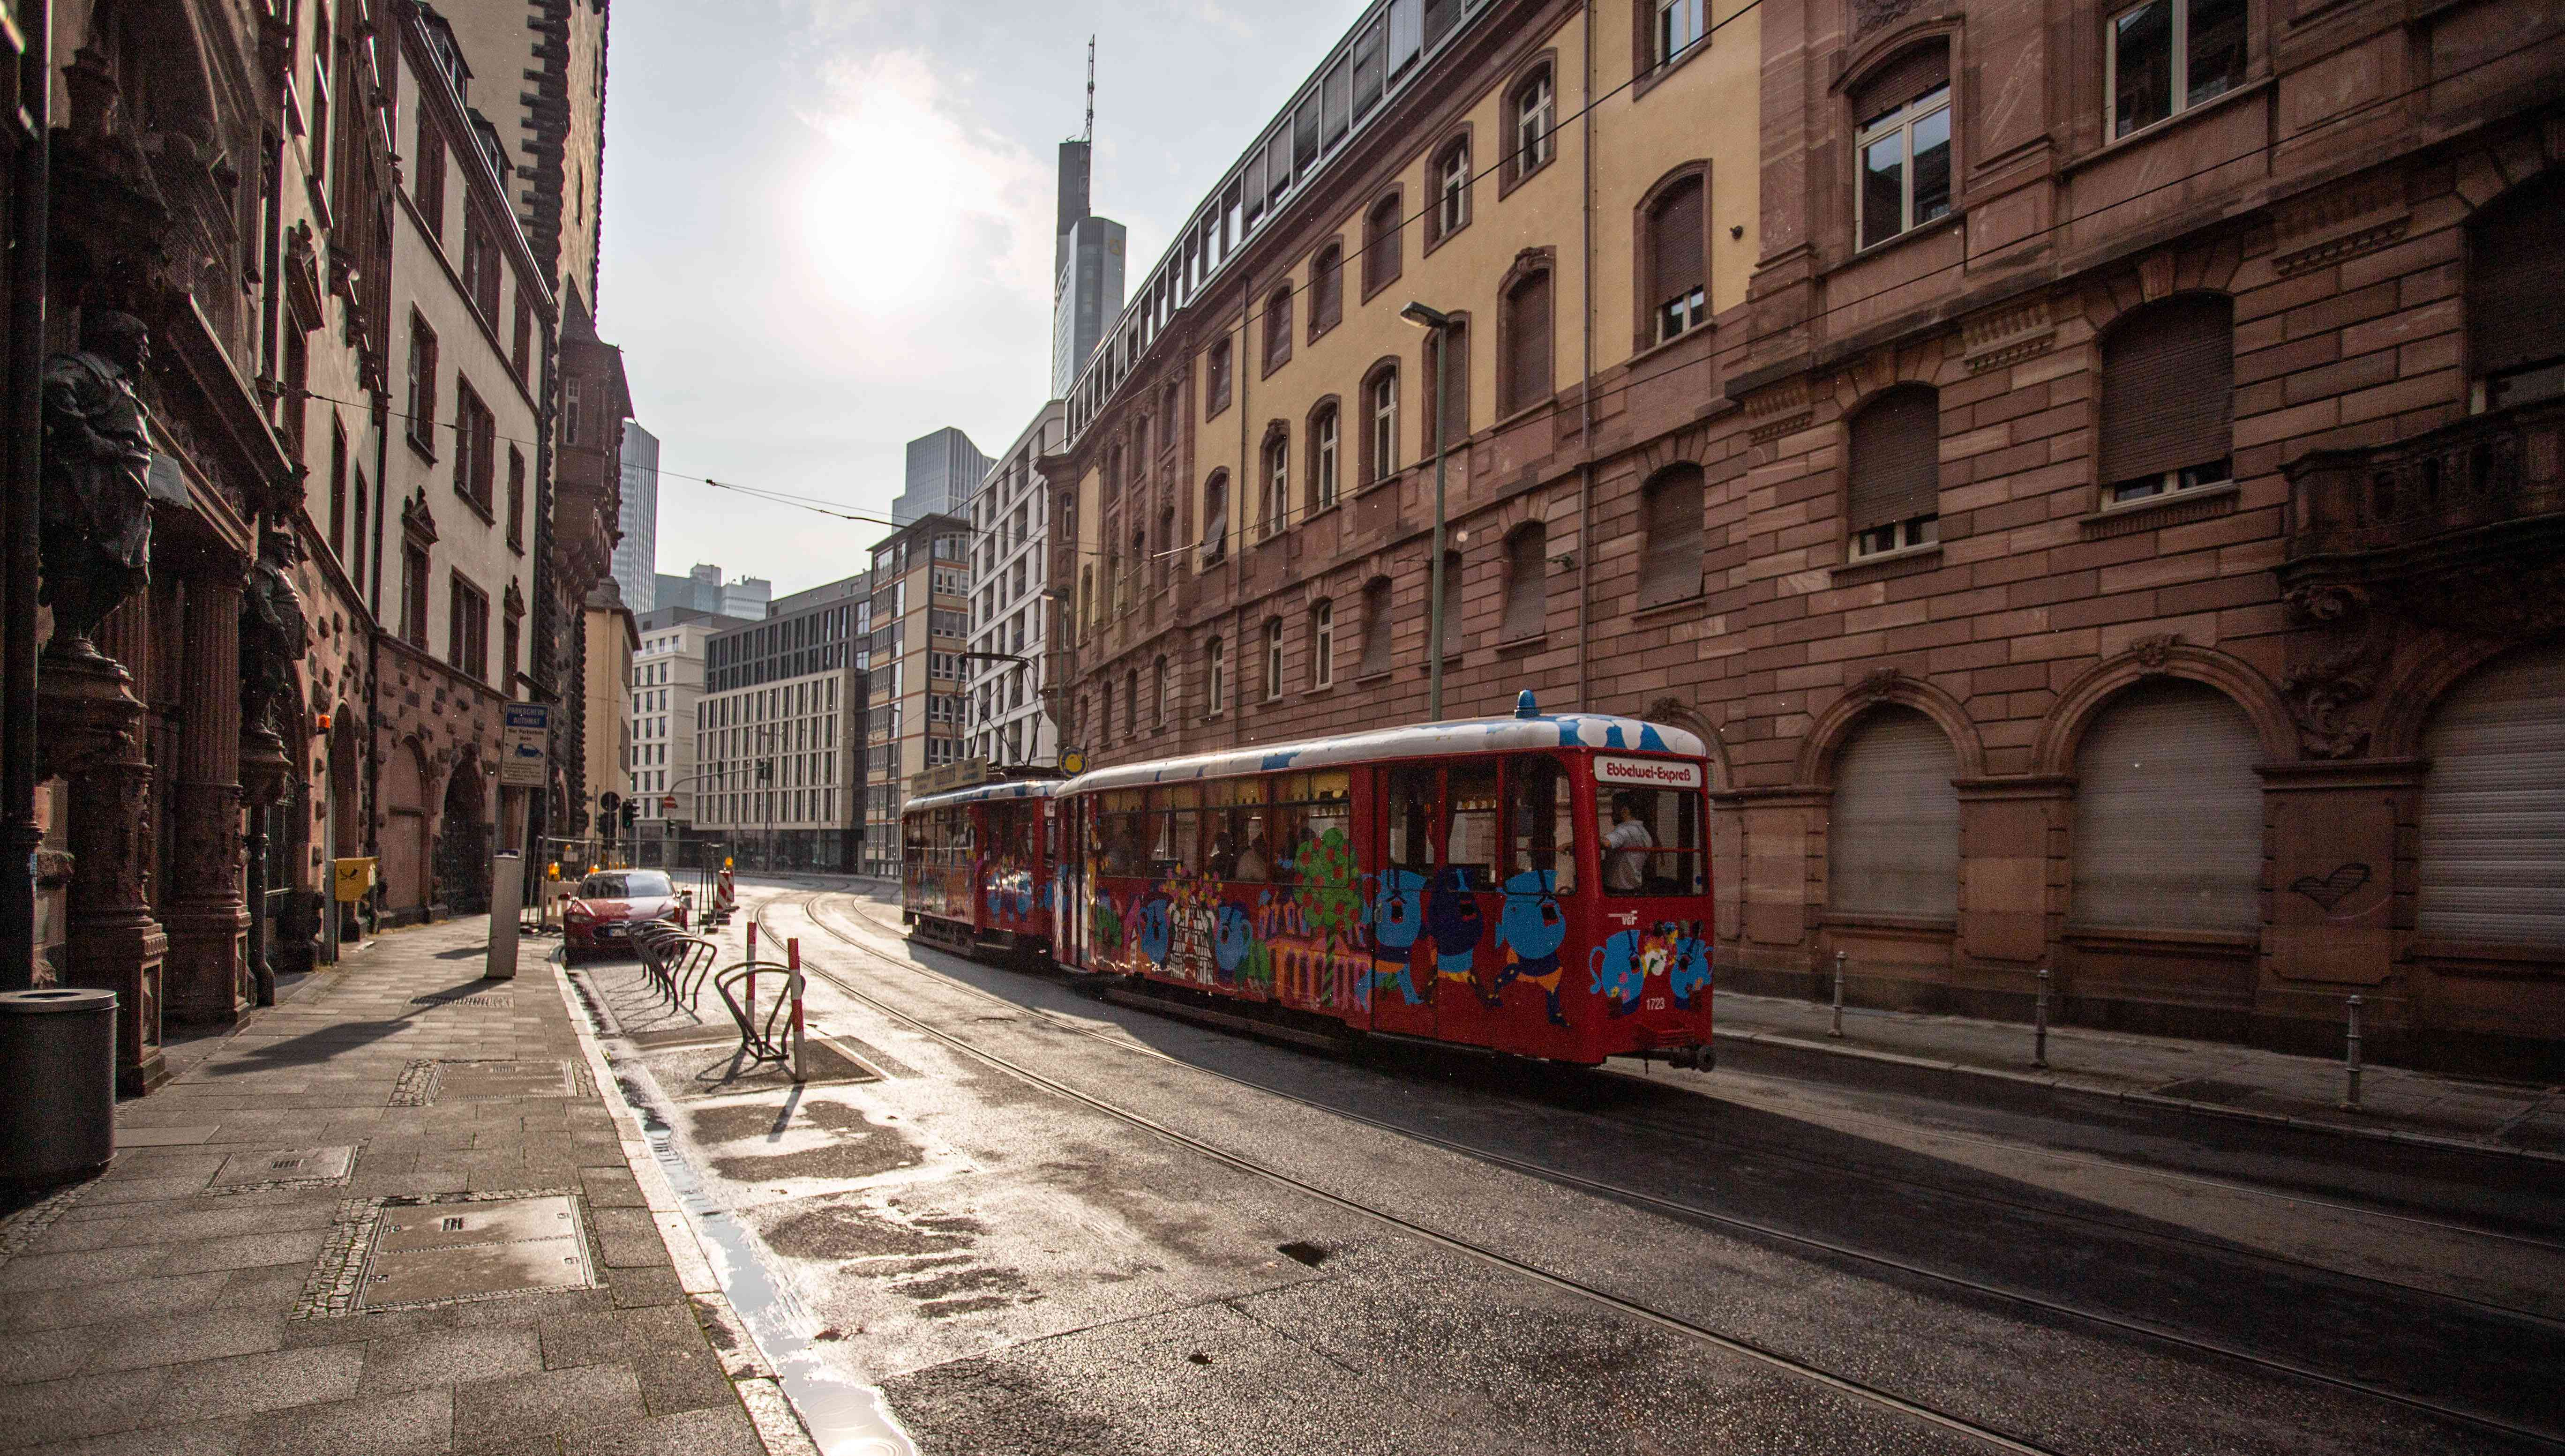 The Apple Cider Express going down an empty street in Frankfurt